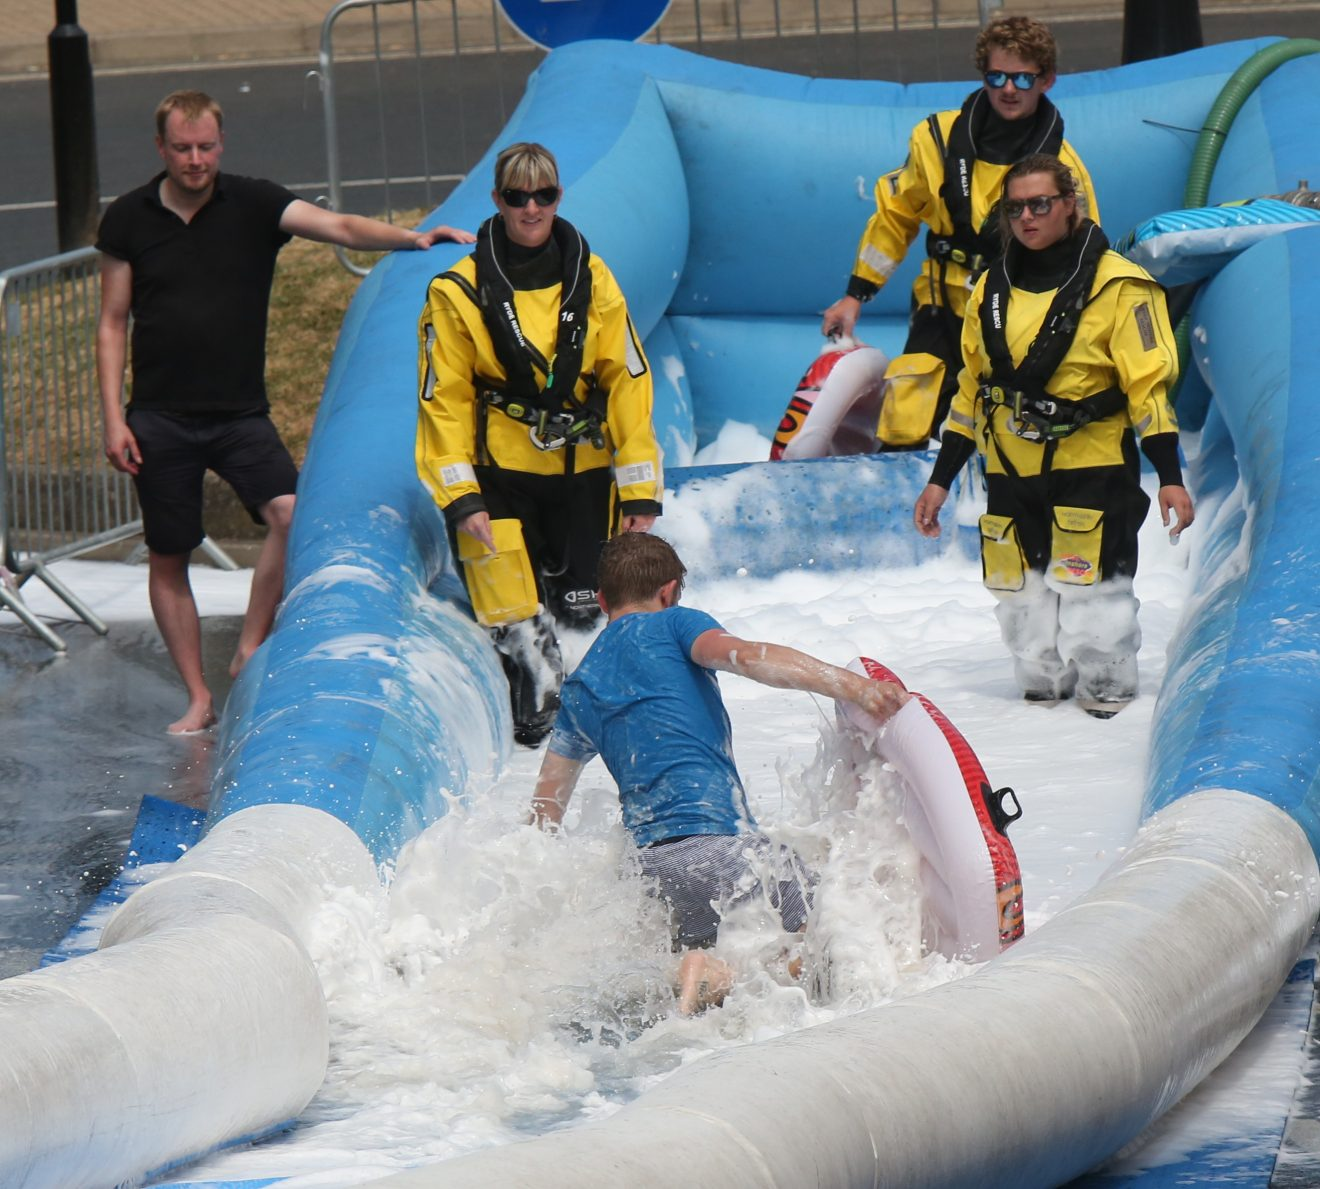 be of action from the 200 metre ryde slide